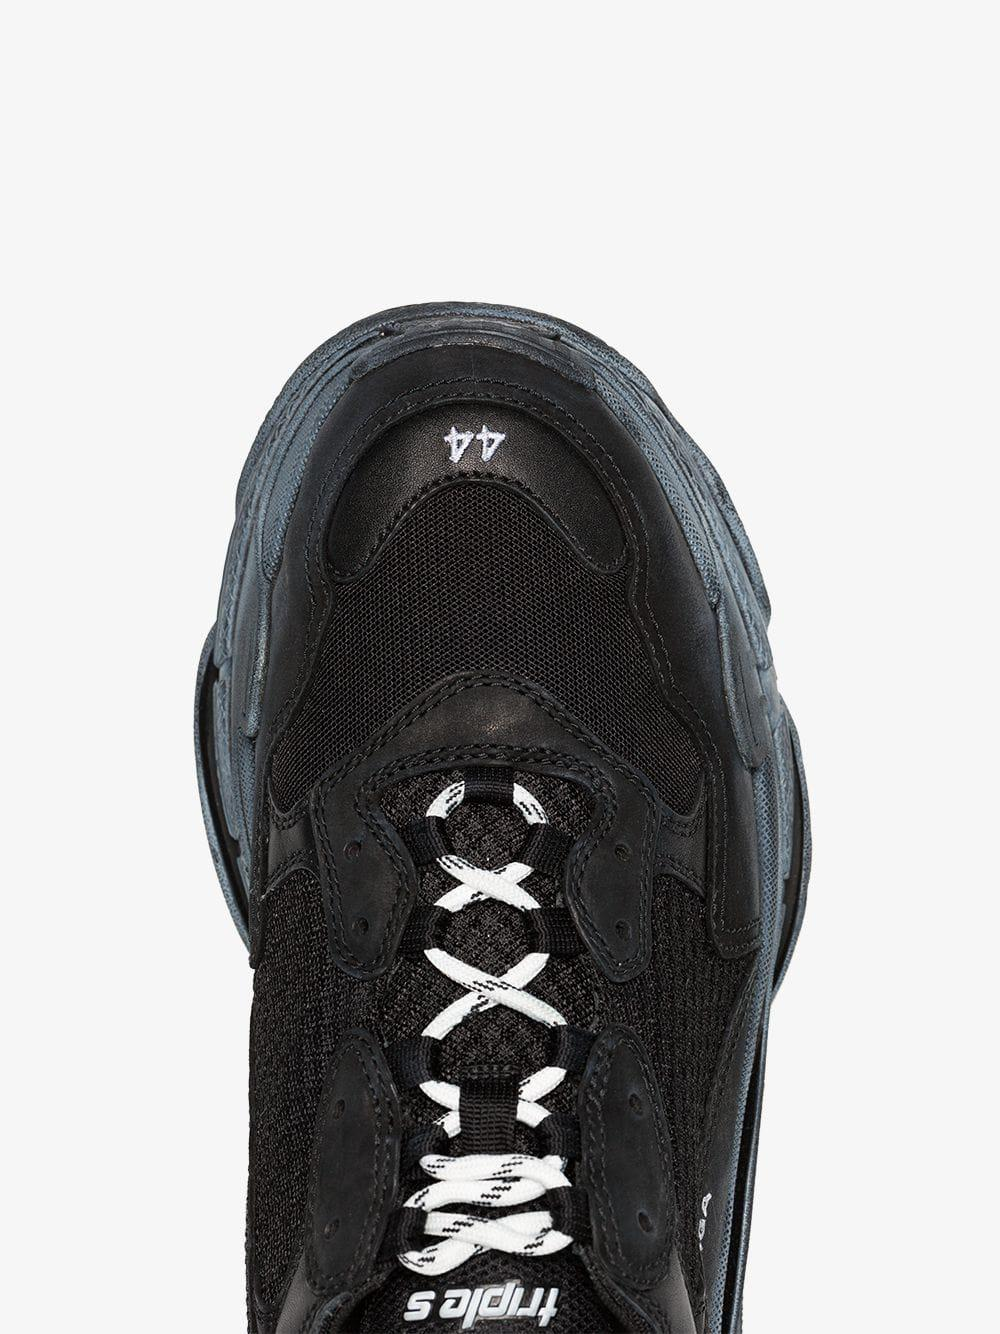 e7ee79ec4cdd Balenciaga Black Triple S Distressed Leather Sneakers in Black for ...